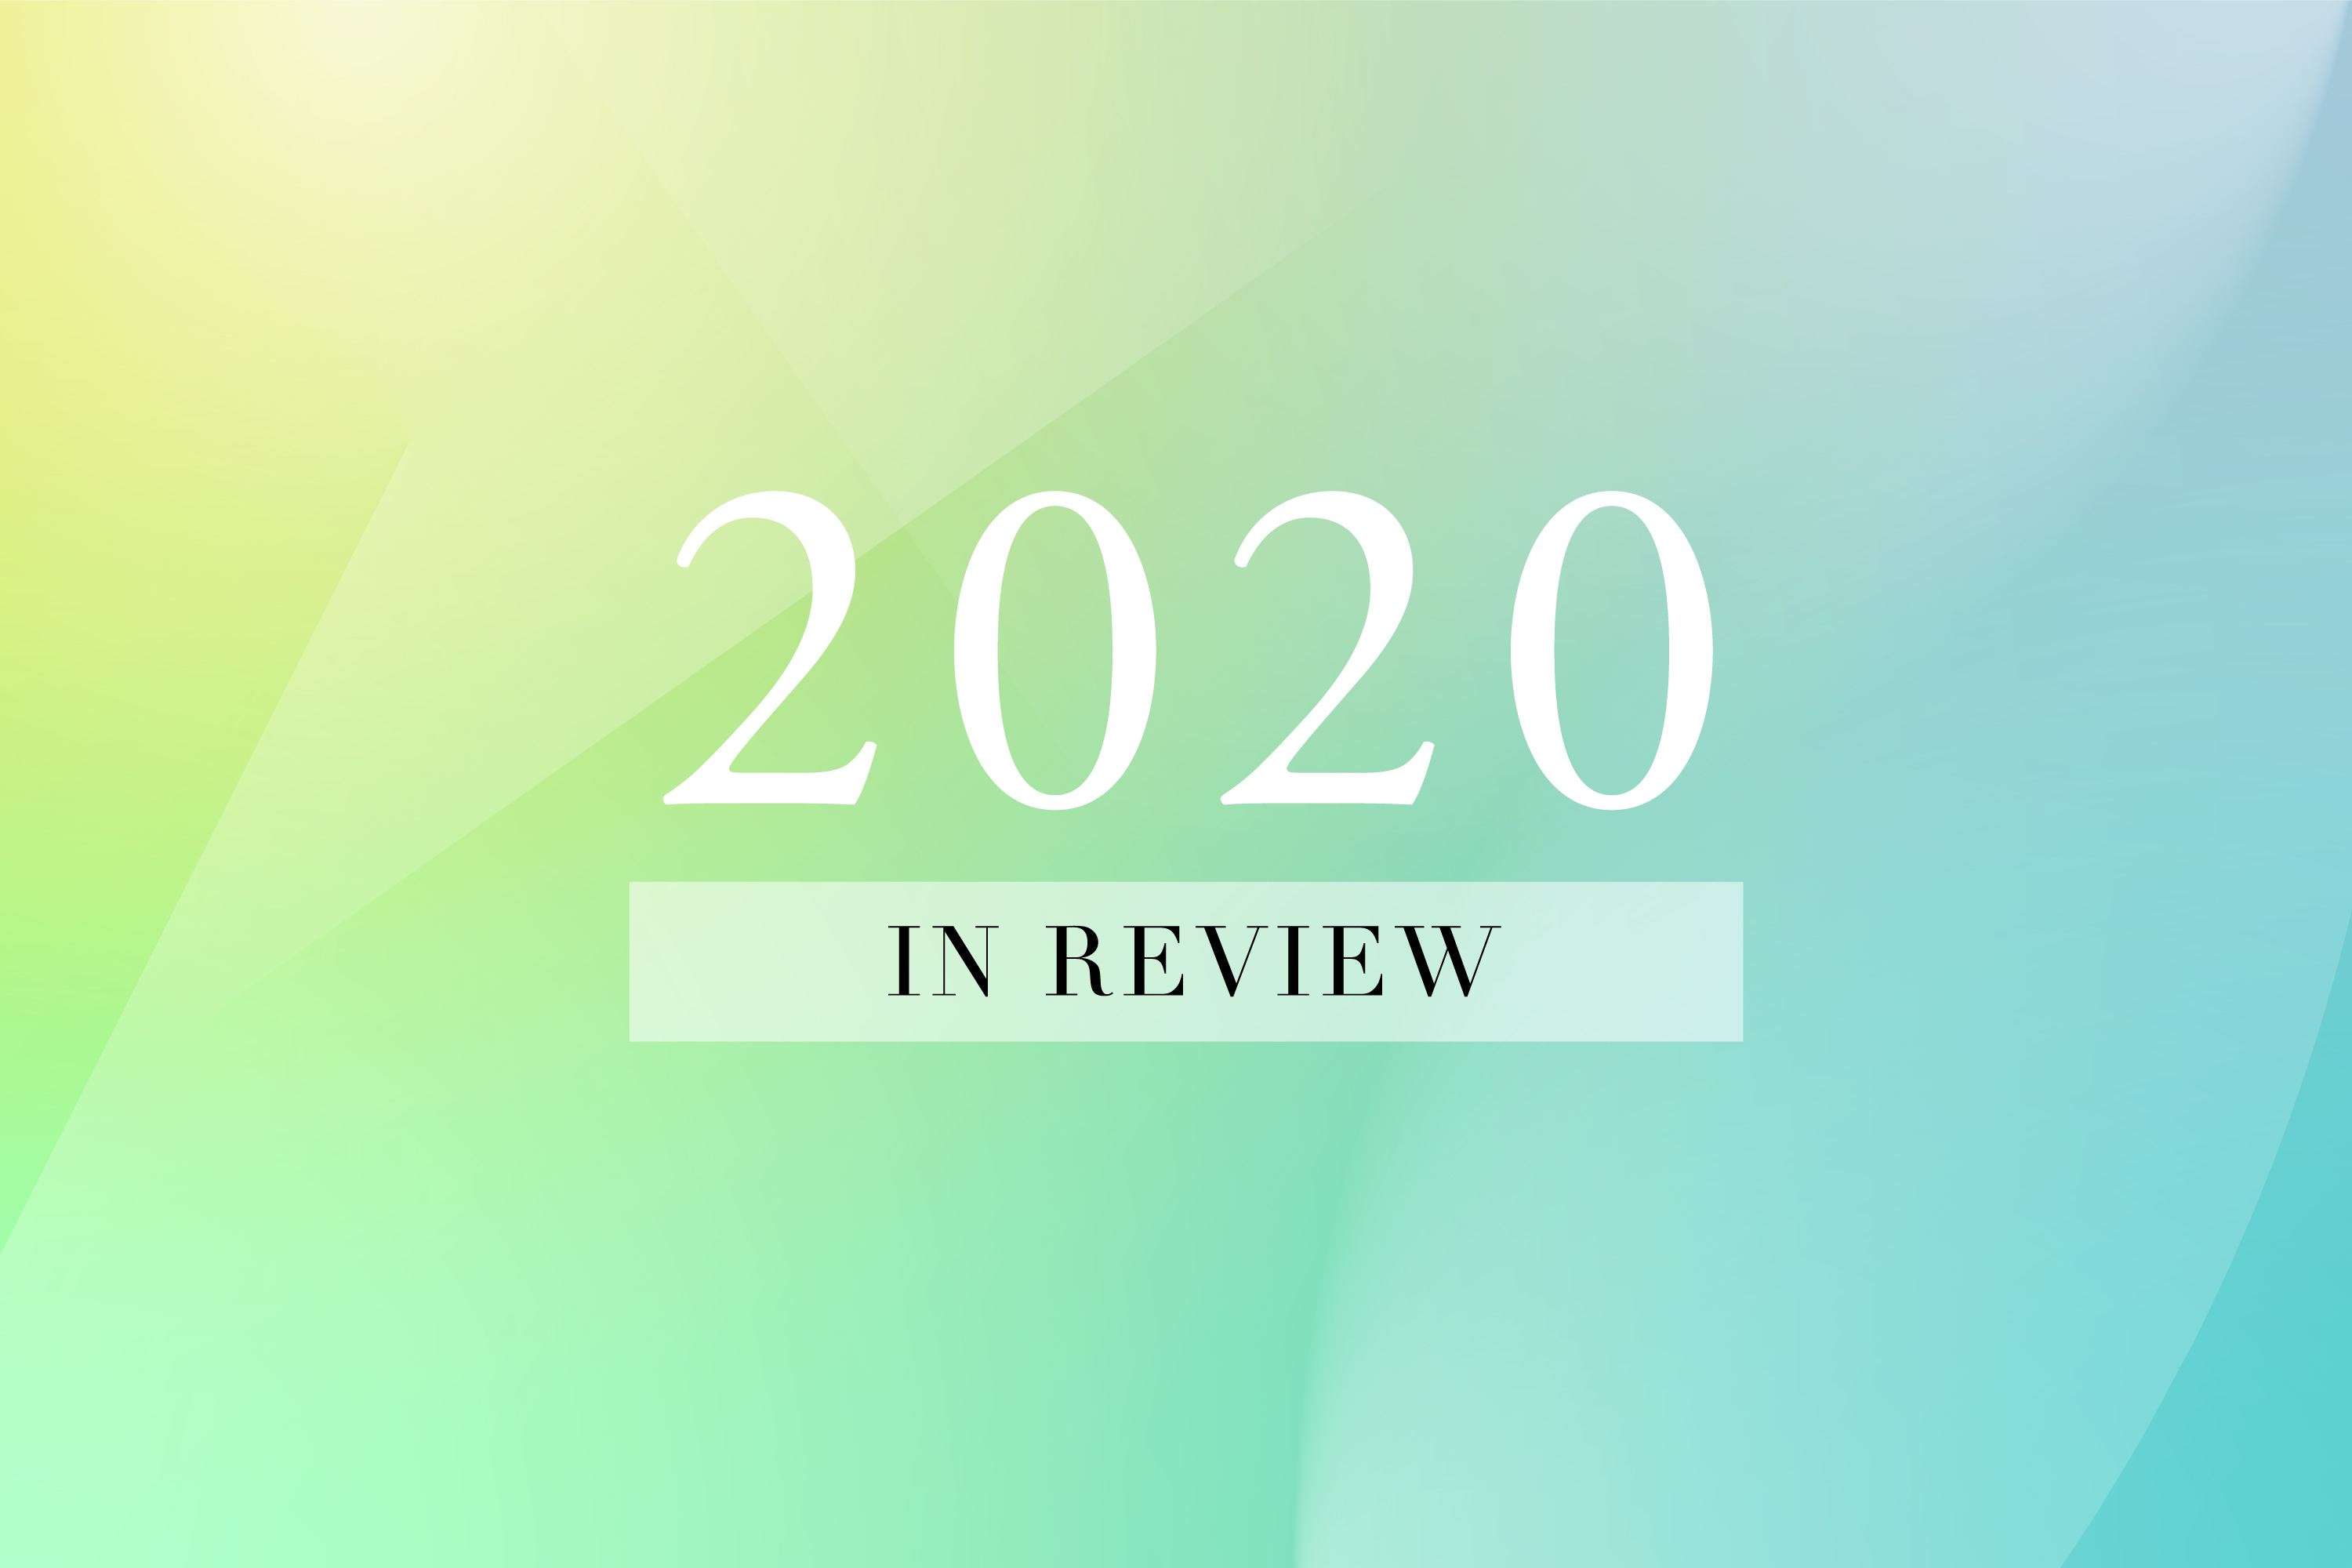 2020 in review: A year without precedent | BWNS